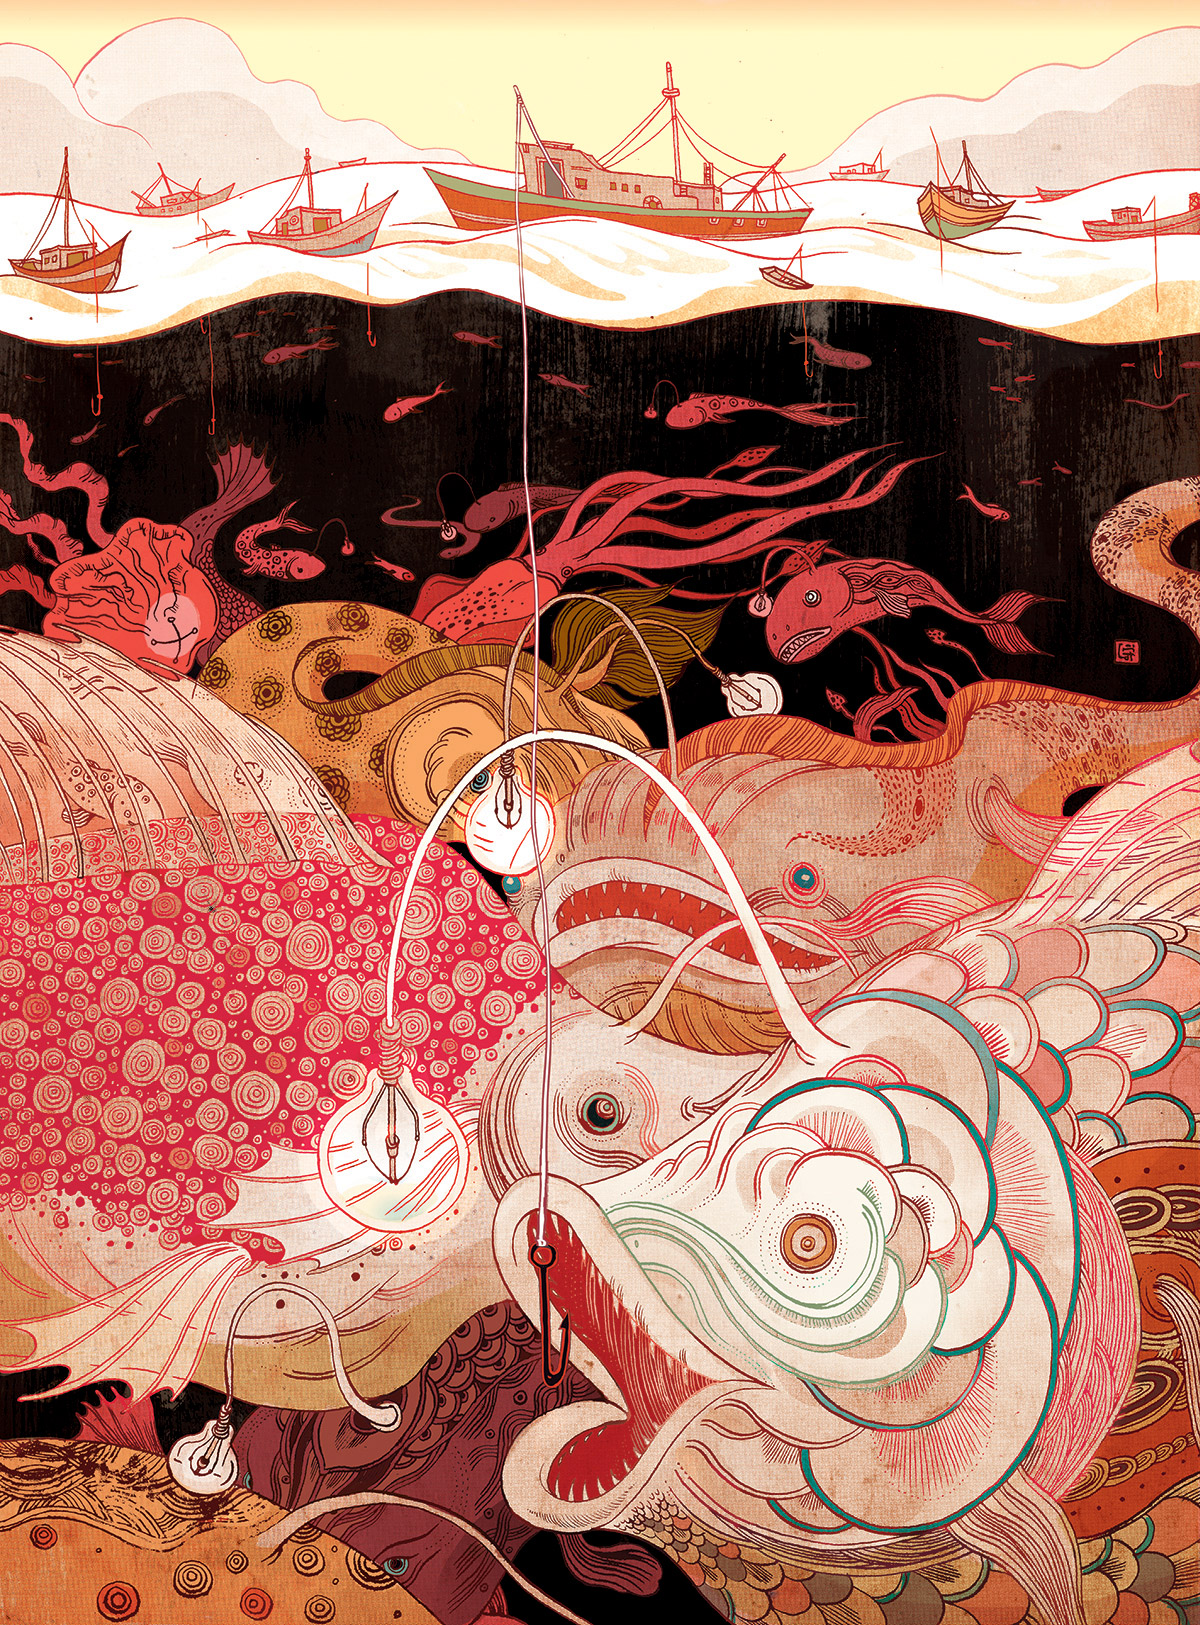 Multi-Dimensional Illustrations Weave Together Mysterious Narratives by Victo Ngai | Colossal